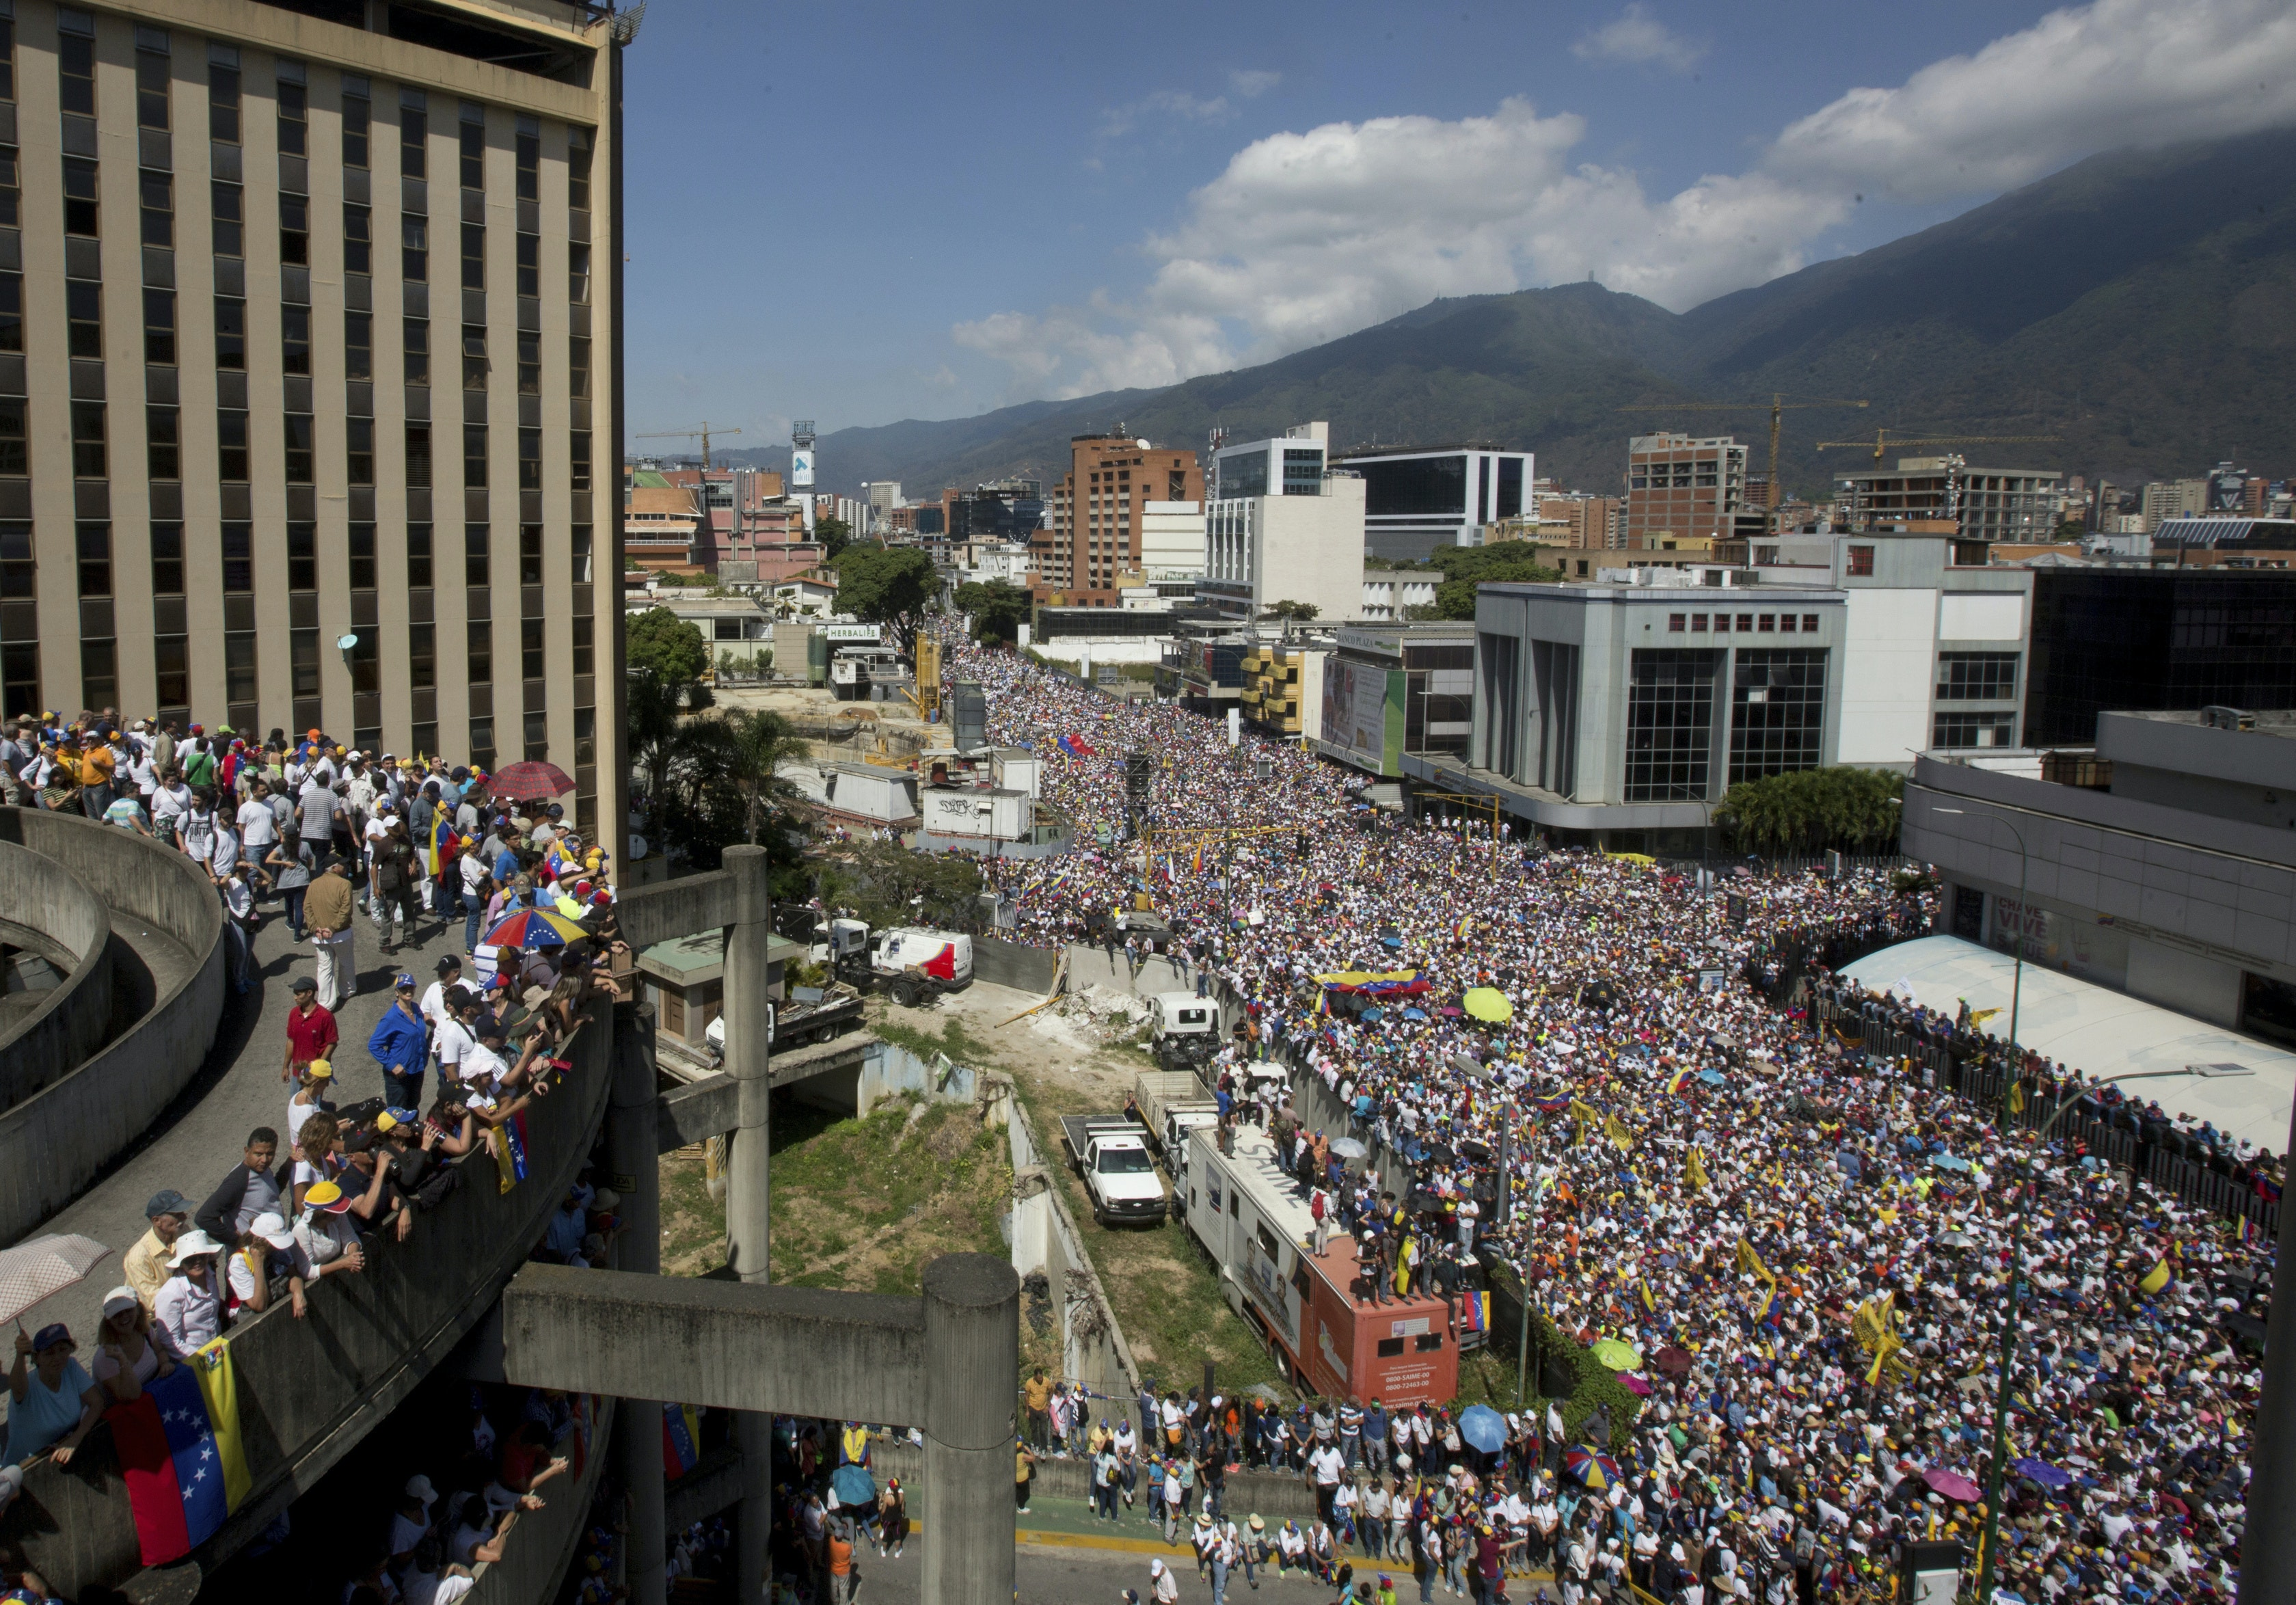 Why Venezuela's oil money could keep undermining its economy and democracy